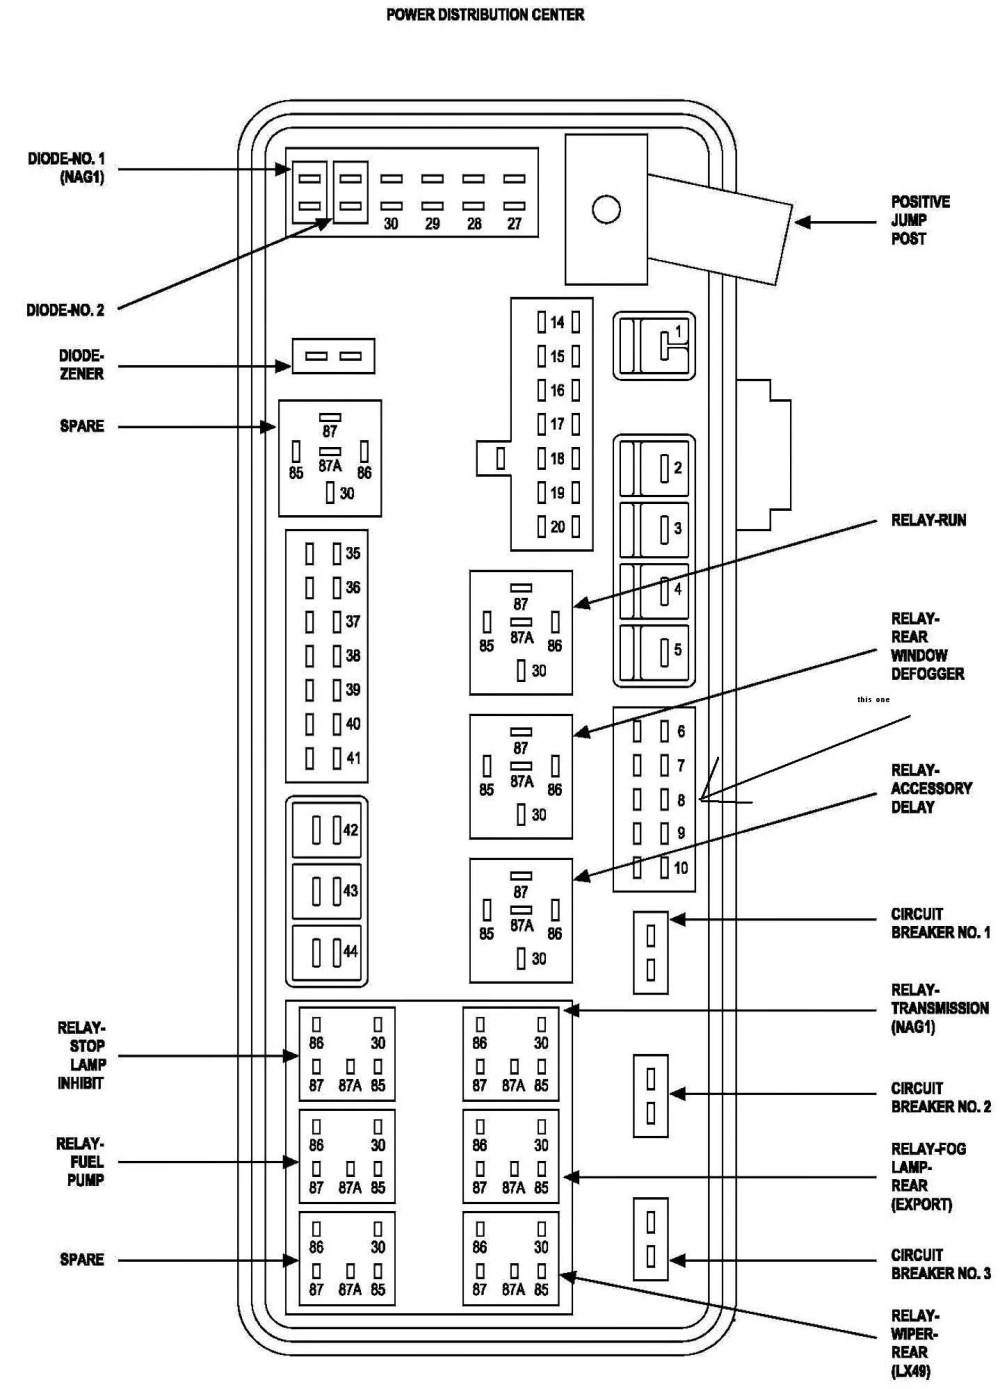 medium resolution of 2005 chrysler fuse panel diagram schema diagram database fuse box diagram for 2005 chrysler sebring